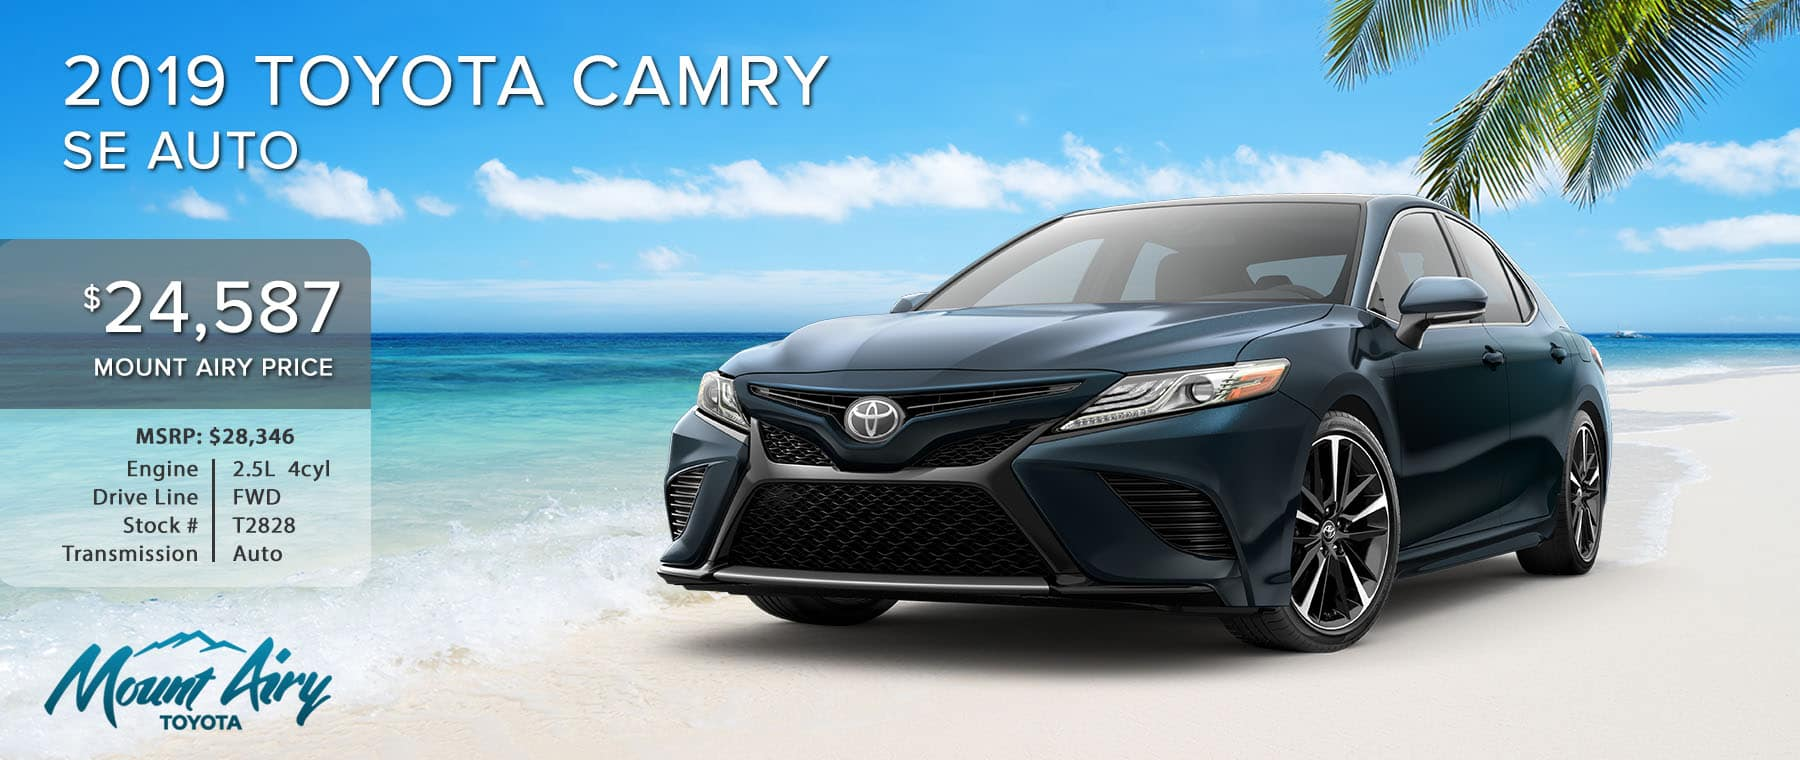 Blue 2019 Toyota Camry on sale